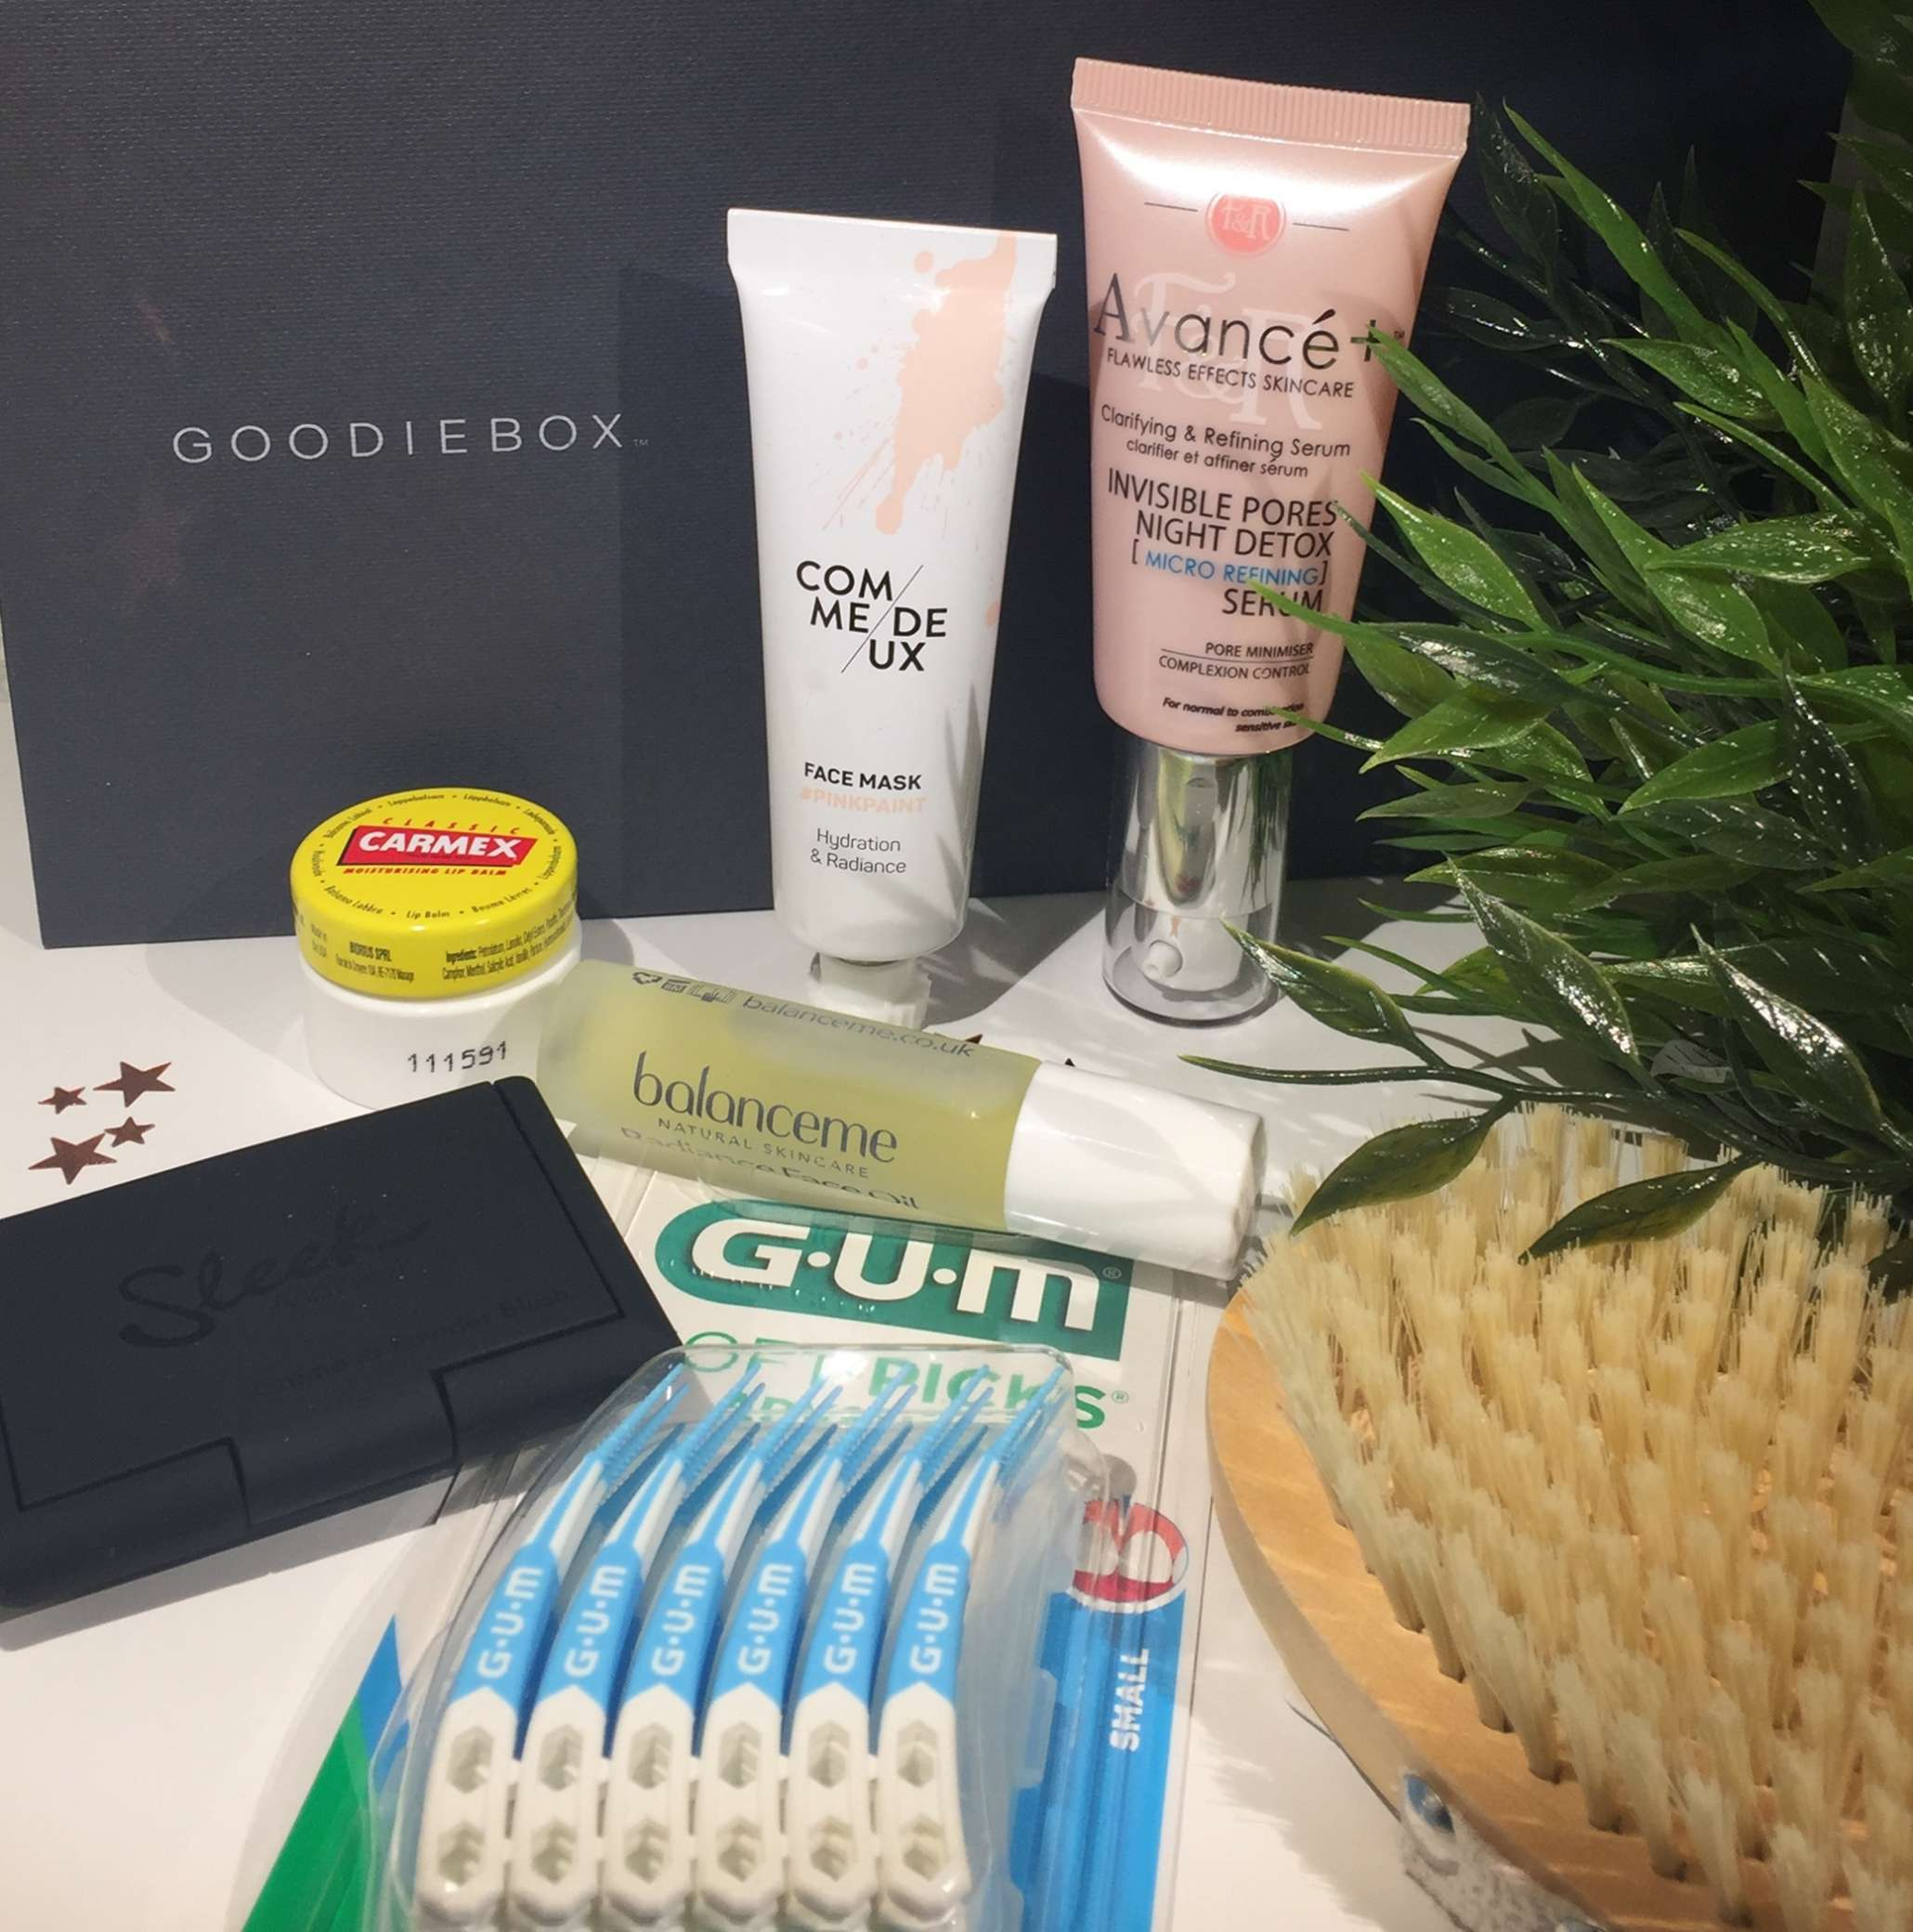 Goodiebox, Goodiebox DK, Goodiebox Danmakr, Sleek, Comme Deux, carmex, Figs & Rouge, Balance Me, Coolcare, Sunstar, Krummeskrummelurer